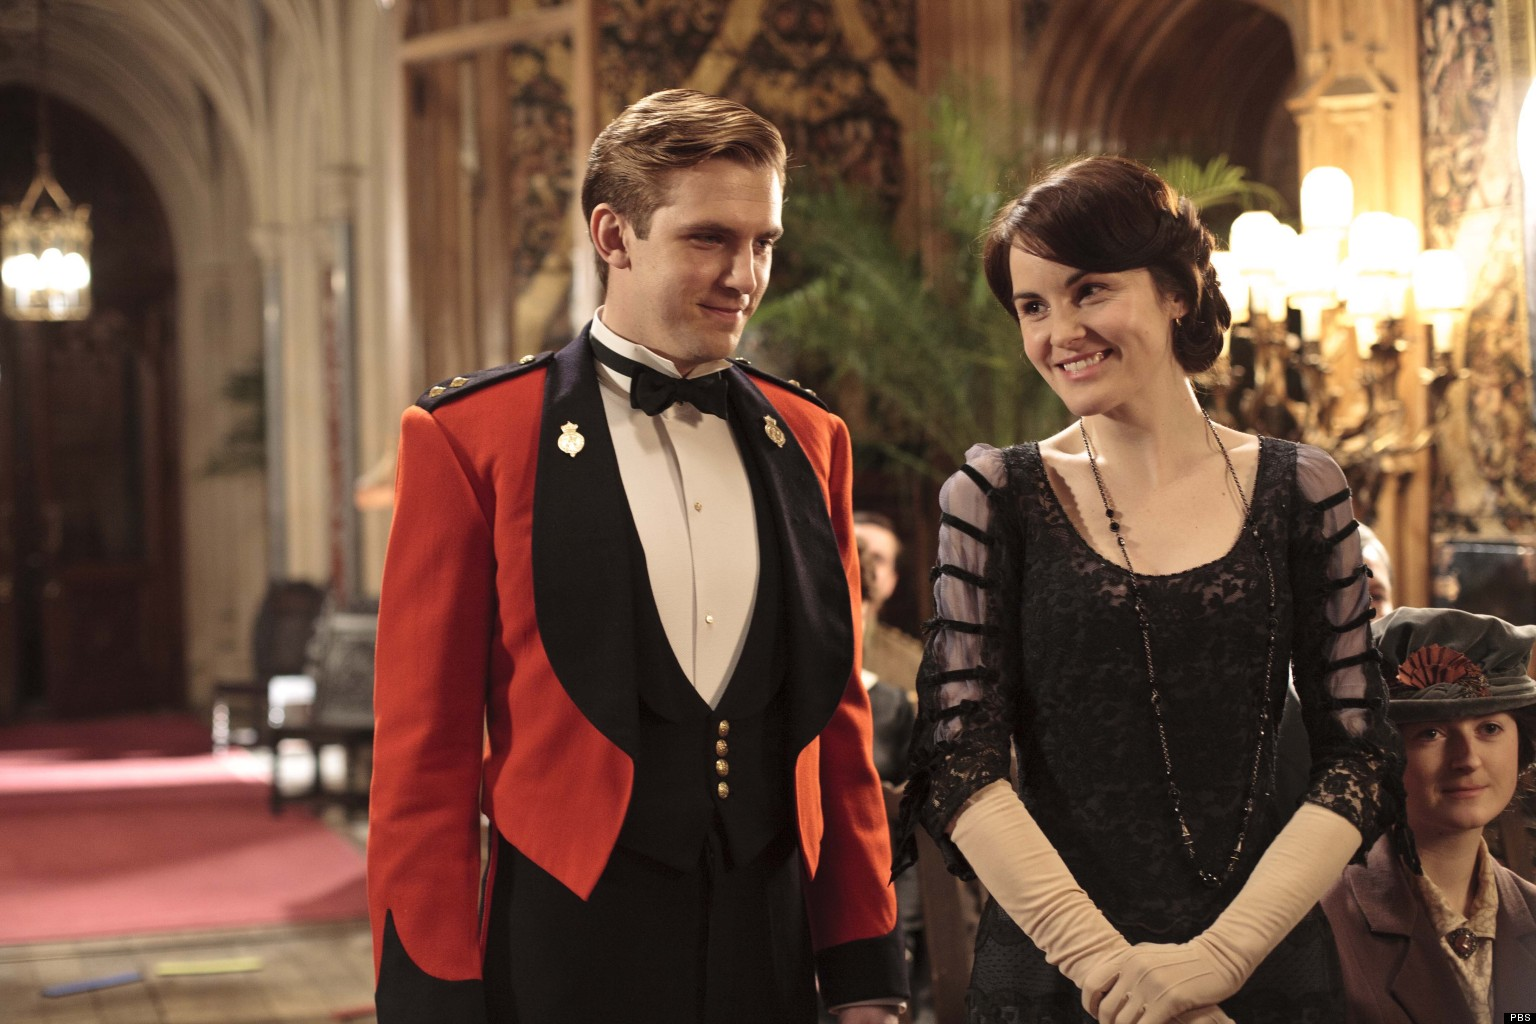 'Downton Abbey' Season 2 Recap: A Look Back Before The